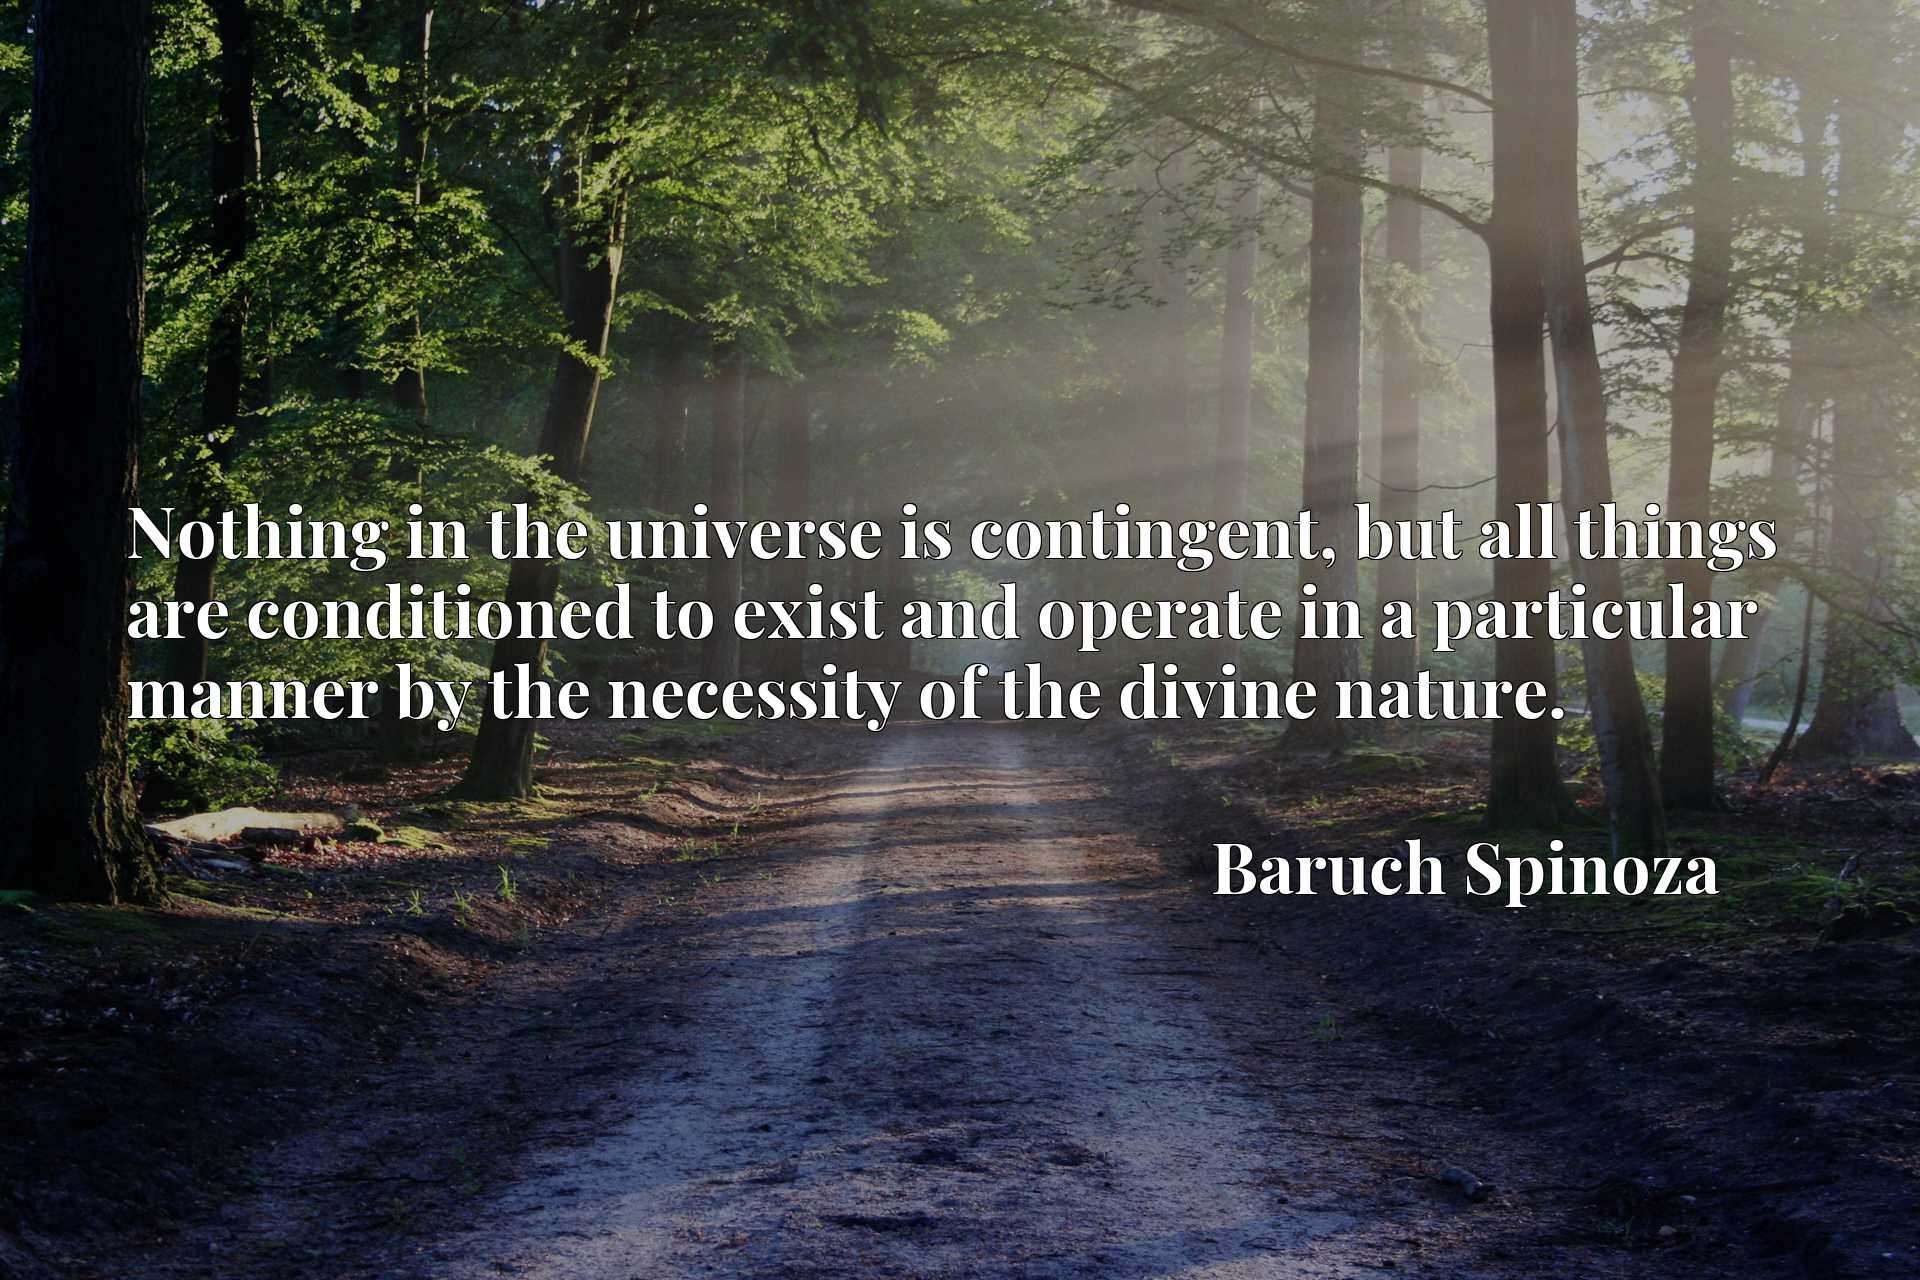 Quote Picture :Nothing in the universe is contingent, but all things are conditioned to exist and operate in a particular manner by the necessity of the divine nature.